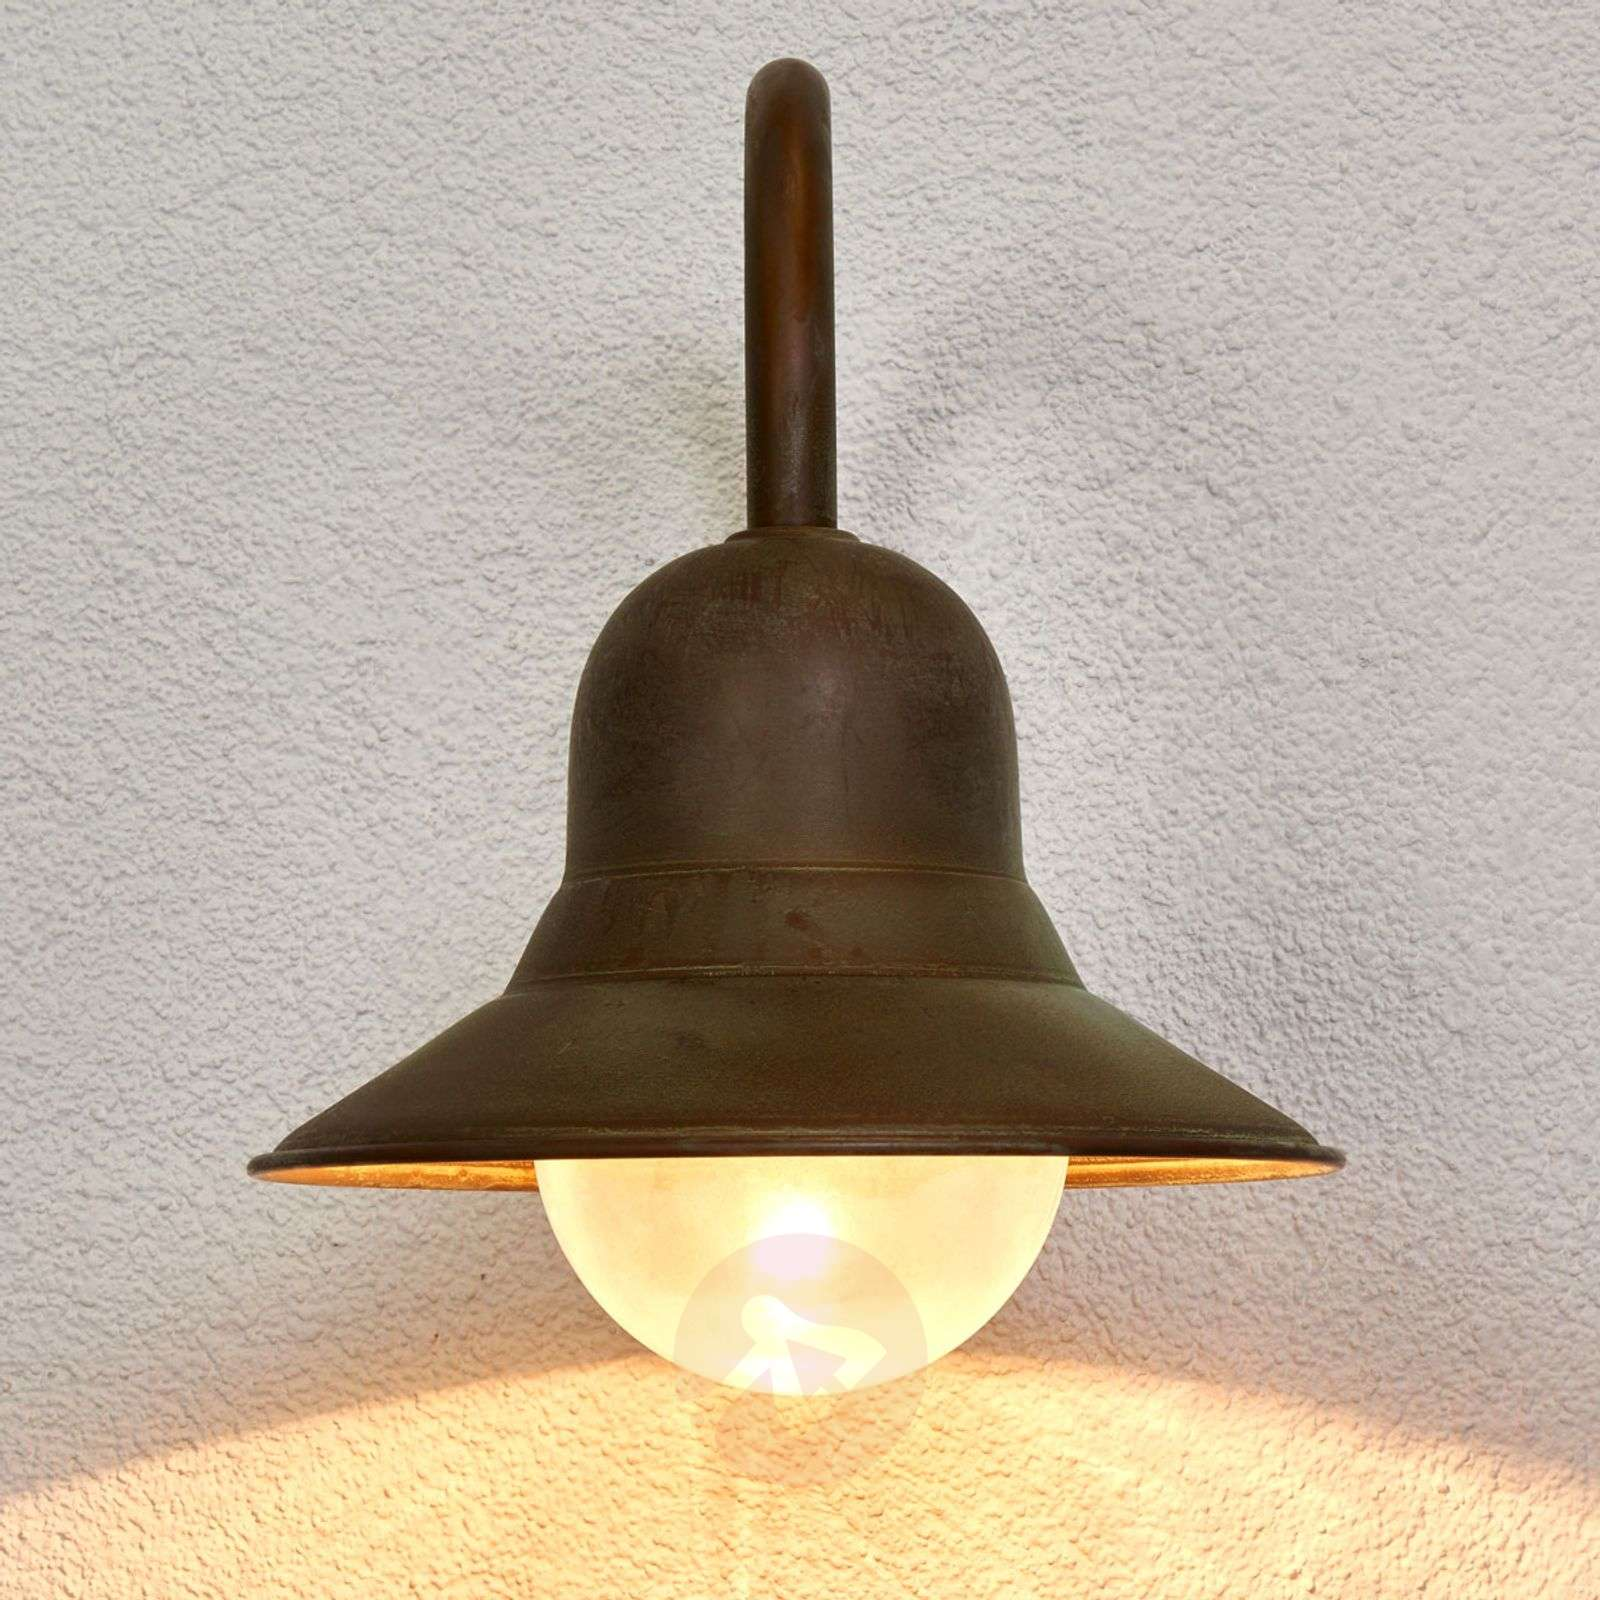 Antique-looking outdoor wall light Marquesa-6515261-01